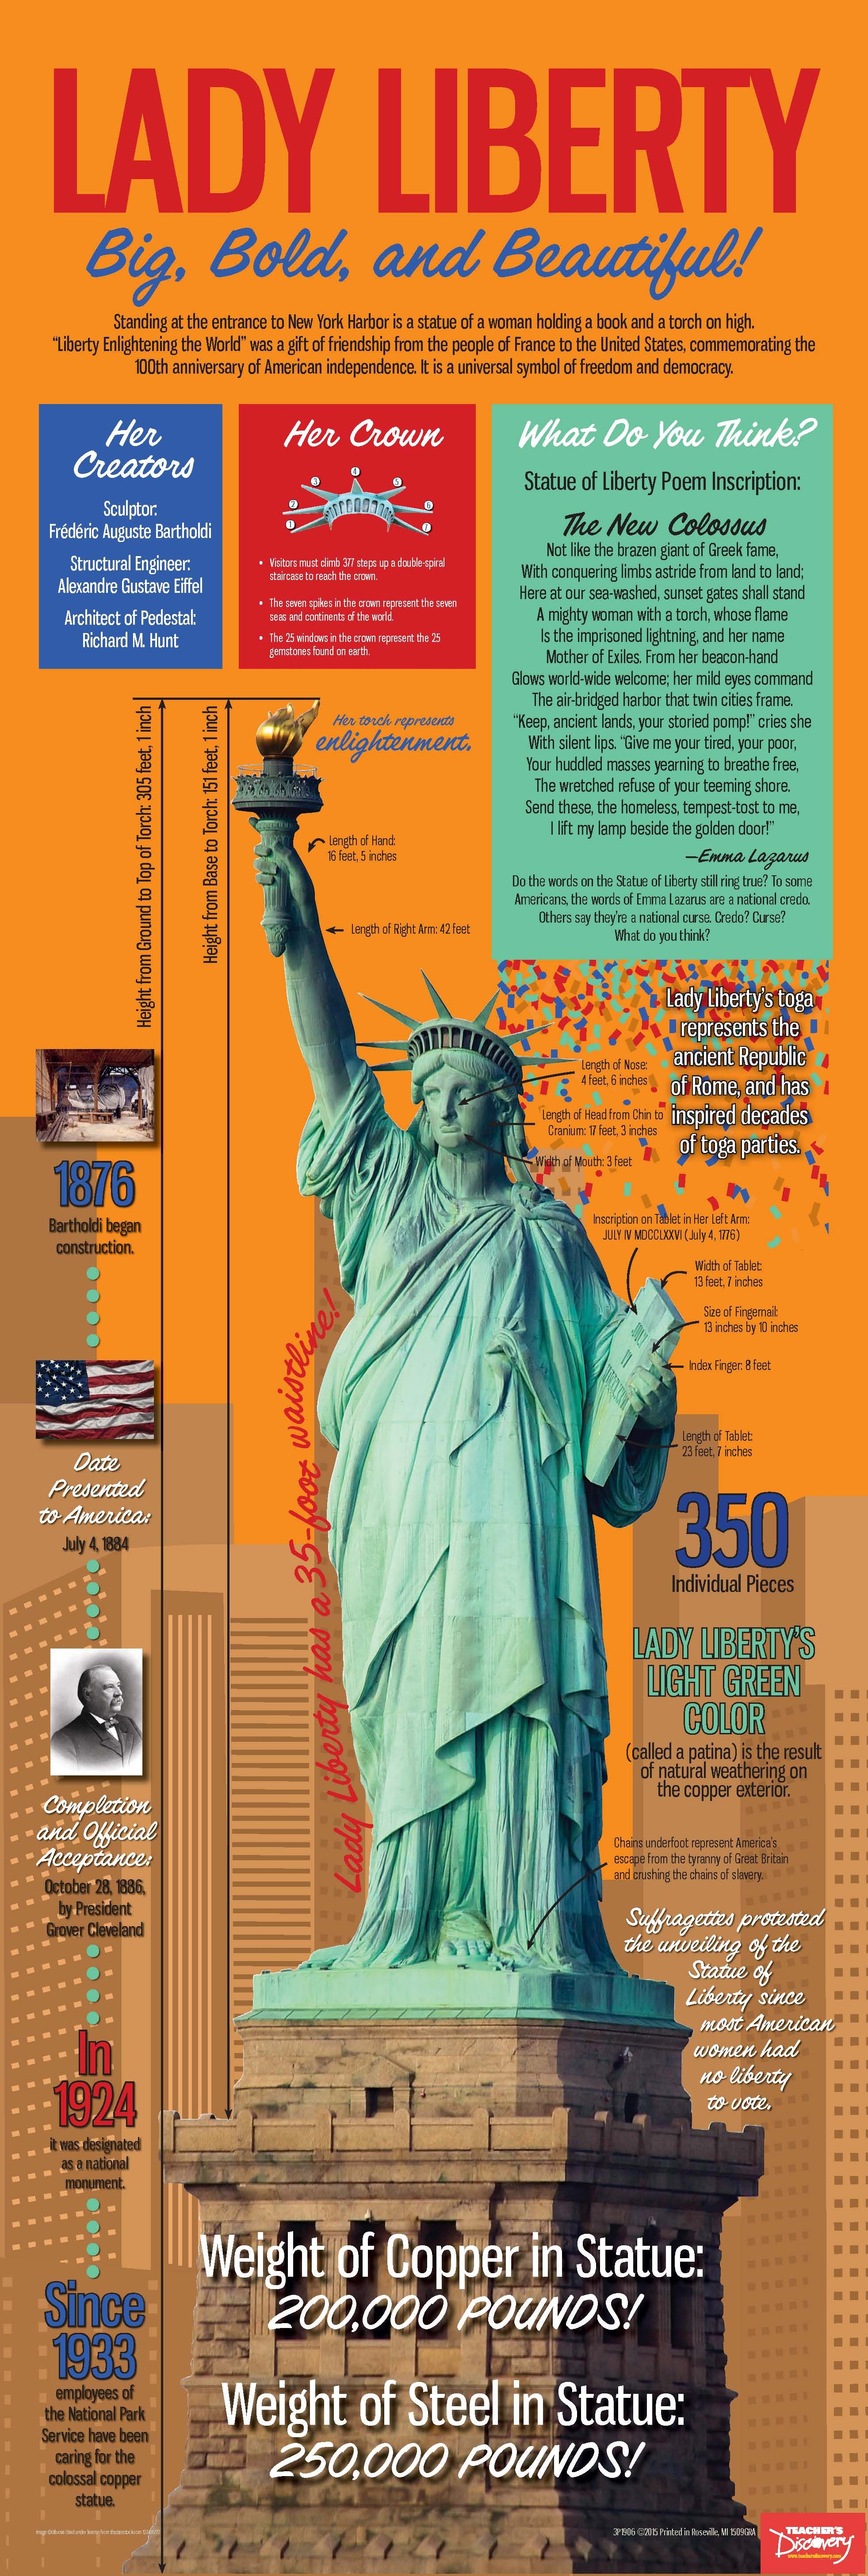 Statue of liberty infographic poster liberty infographic and statue of liberty infographic poster teachers discovery statueofliberty patriotic ushistory buycottarizona Gallery